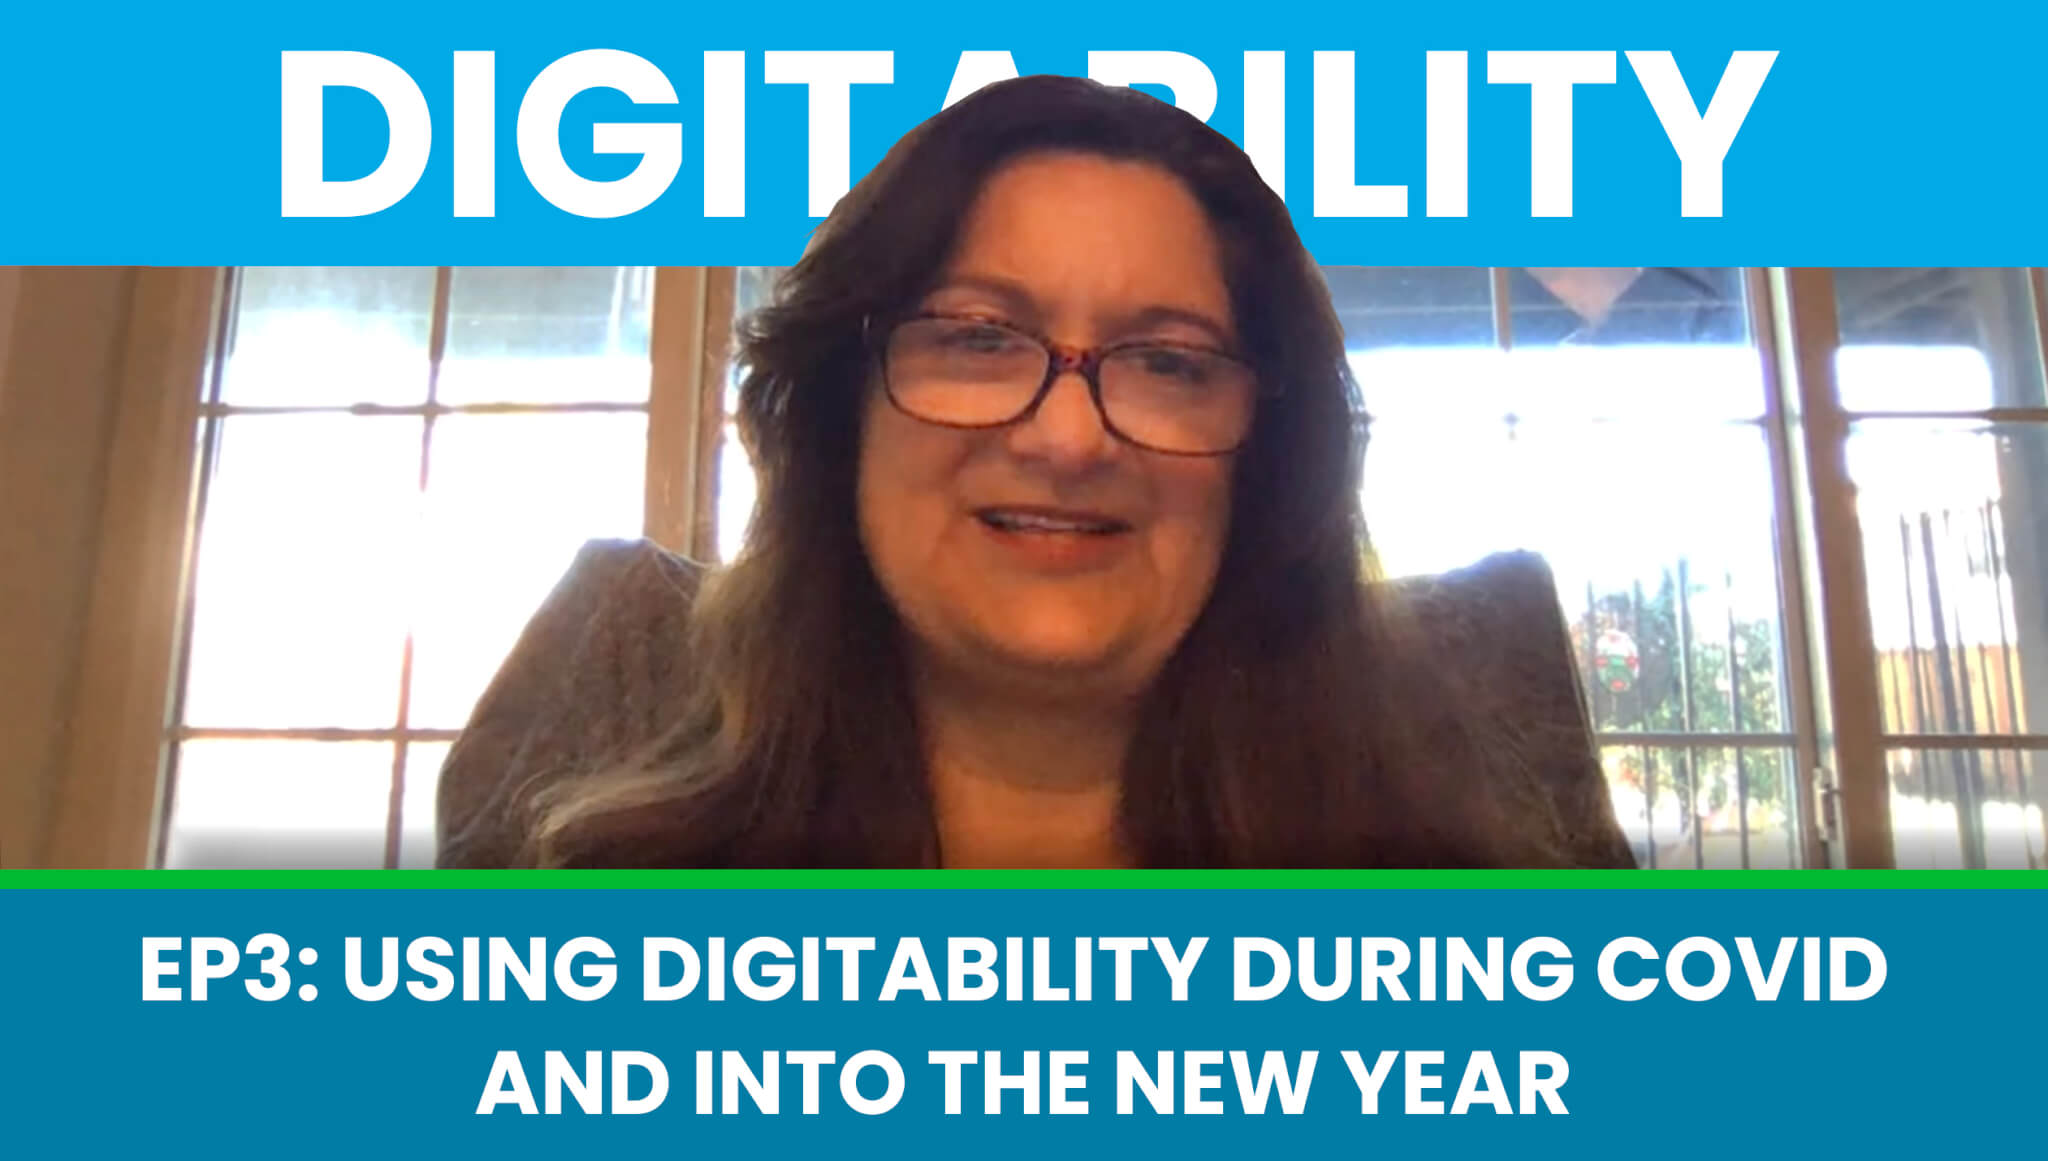 Using Digitability during COVID and Into the New Year